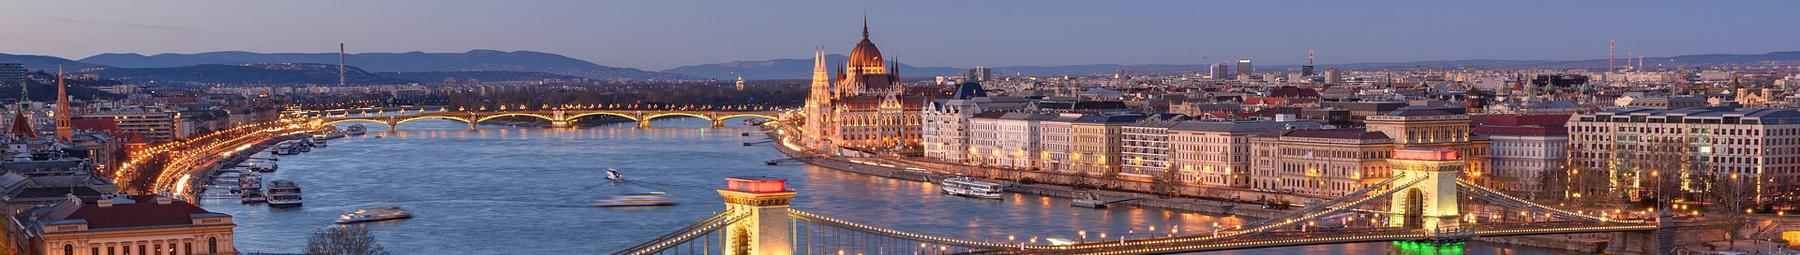 City of Budapest on the Danube River.